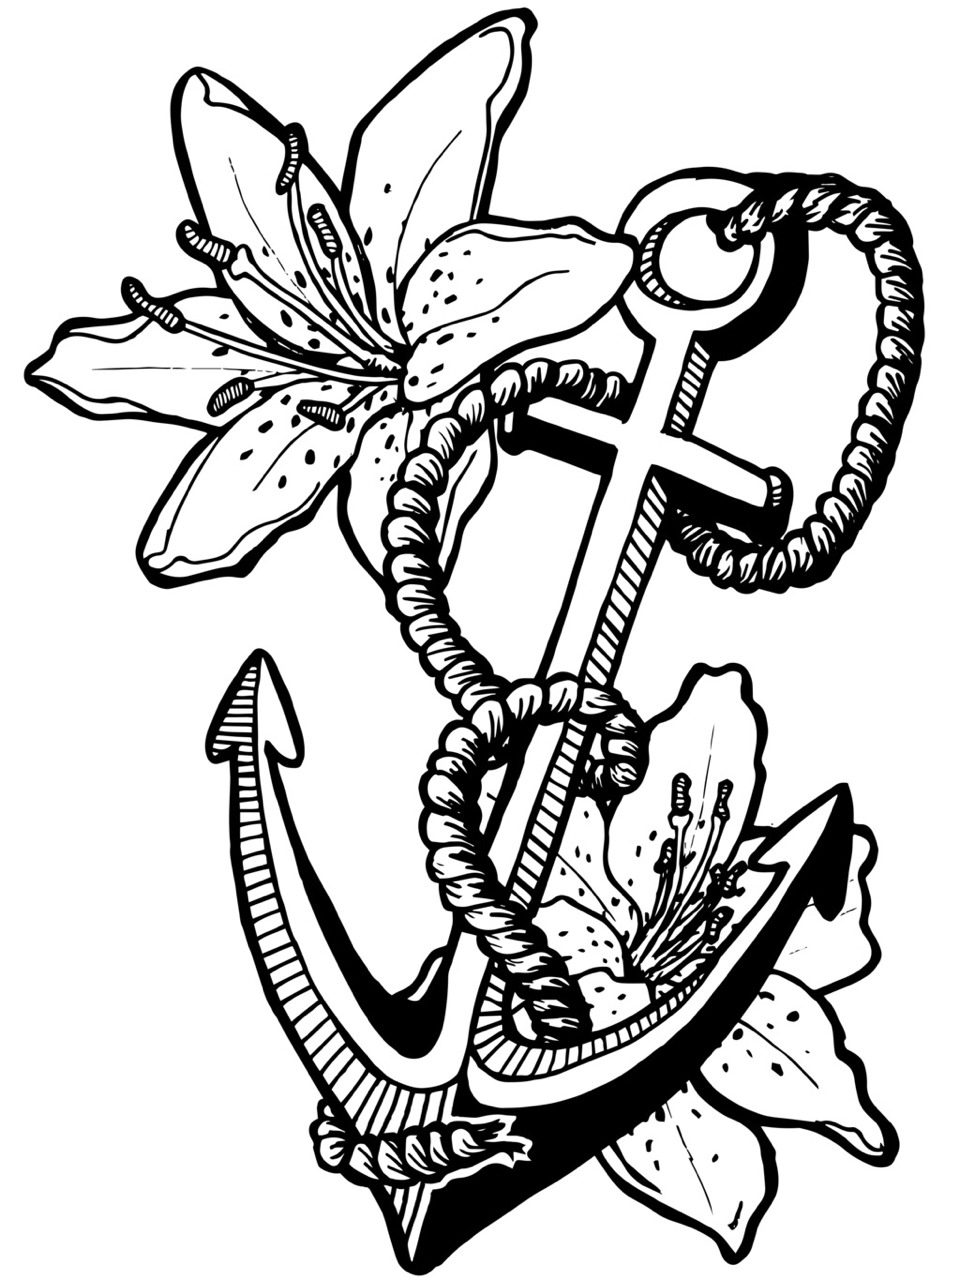 really cool coloring pages - by heather crew 13 friends 36 followers